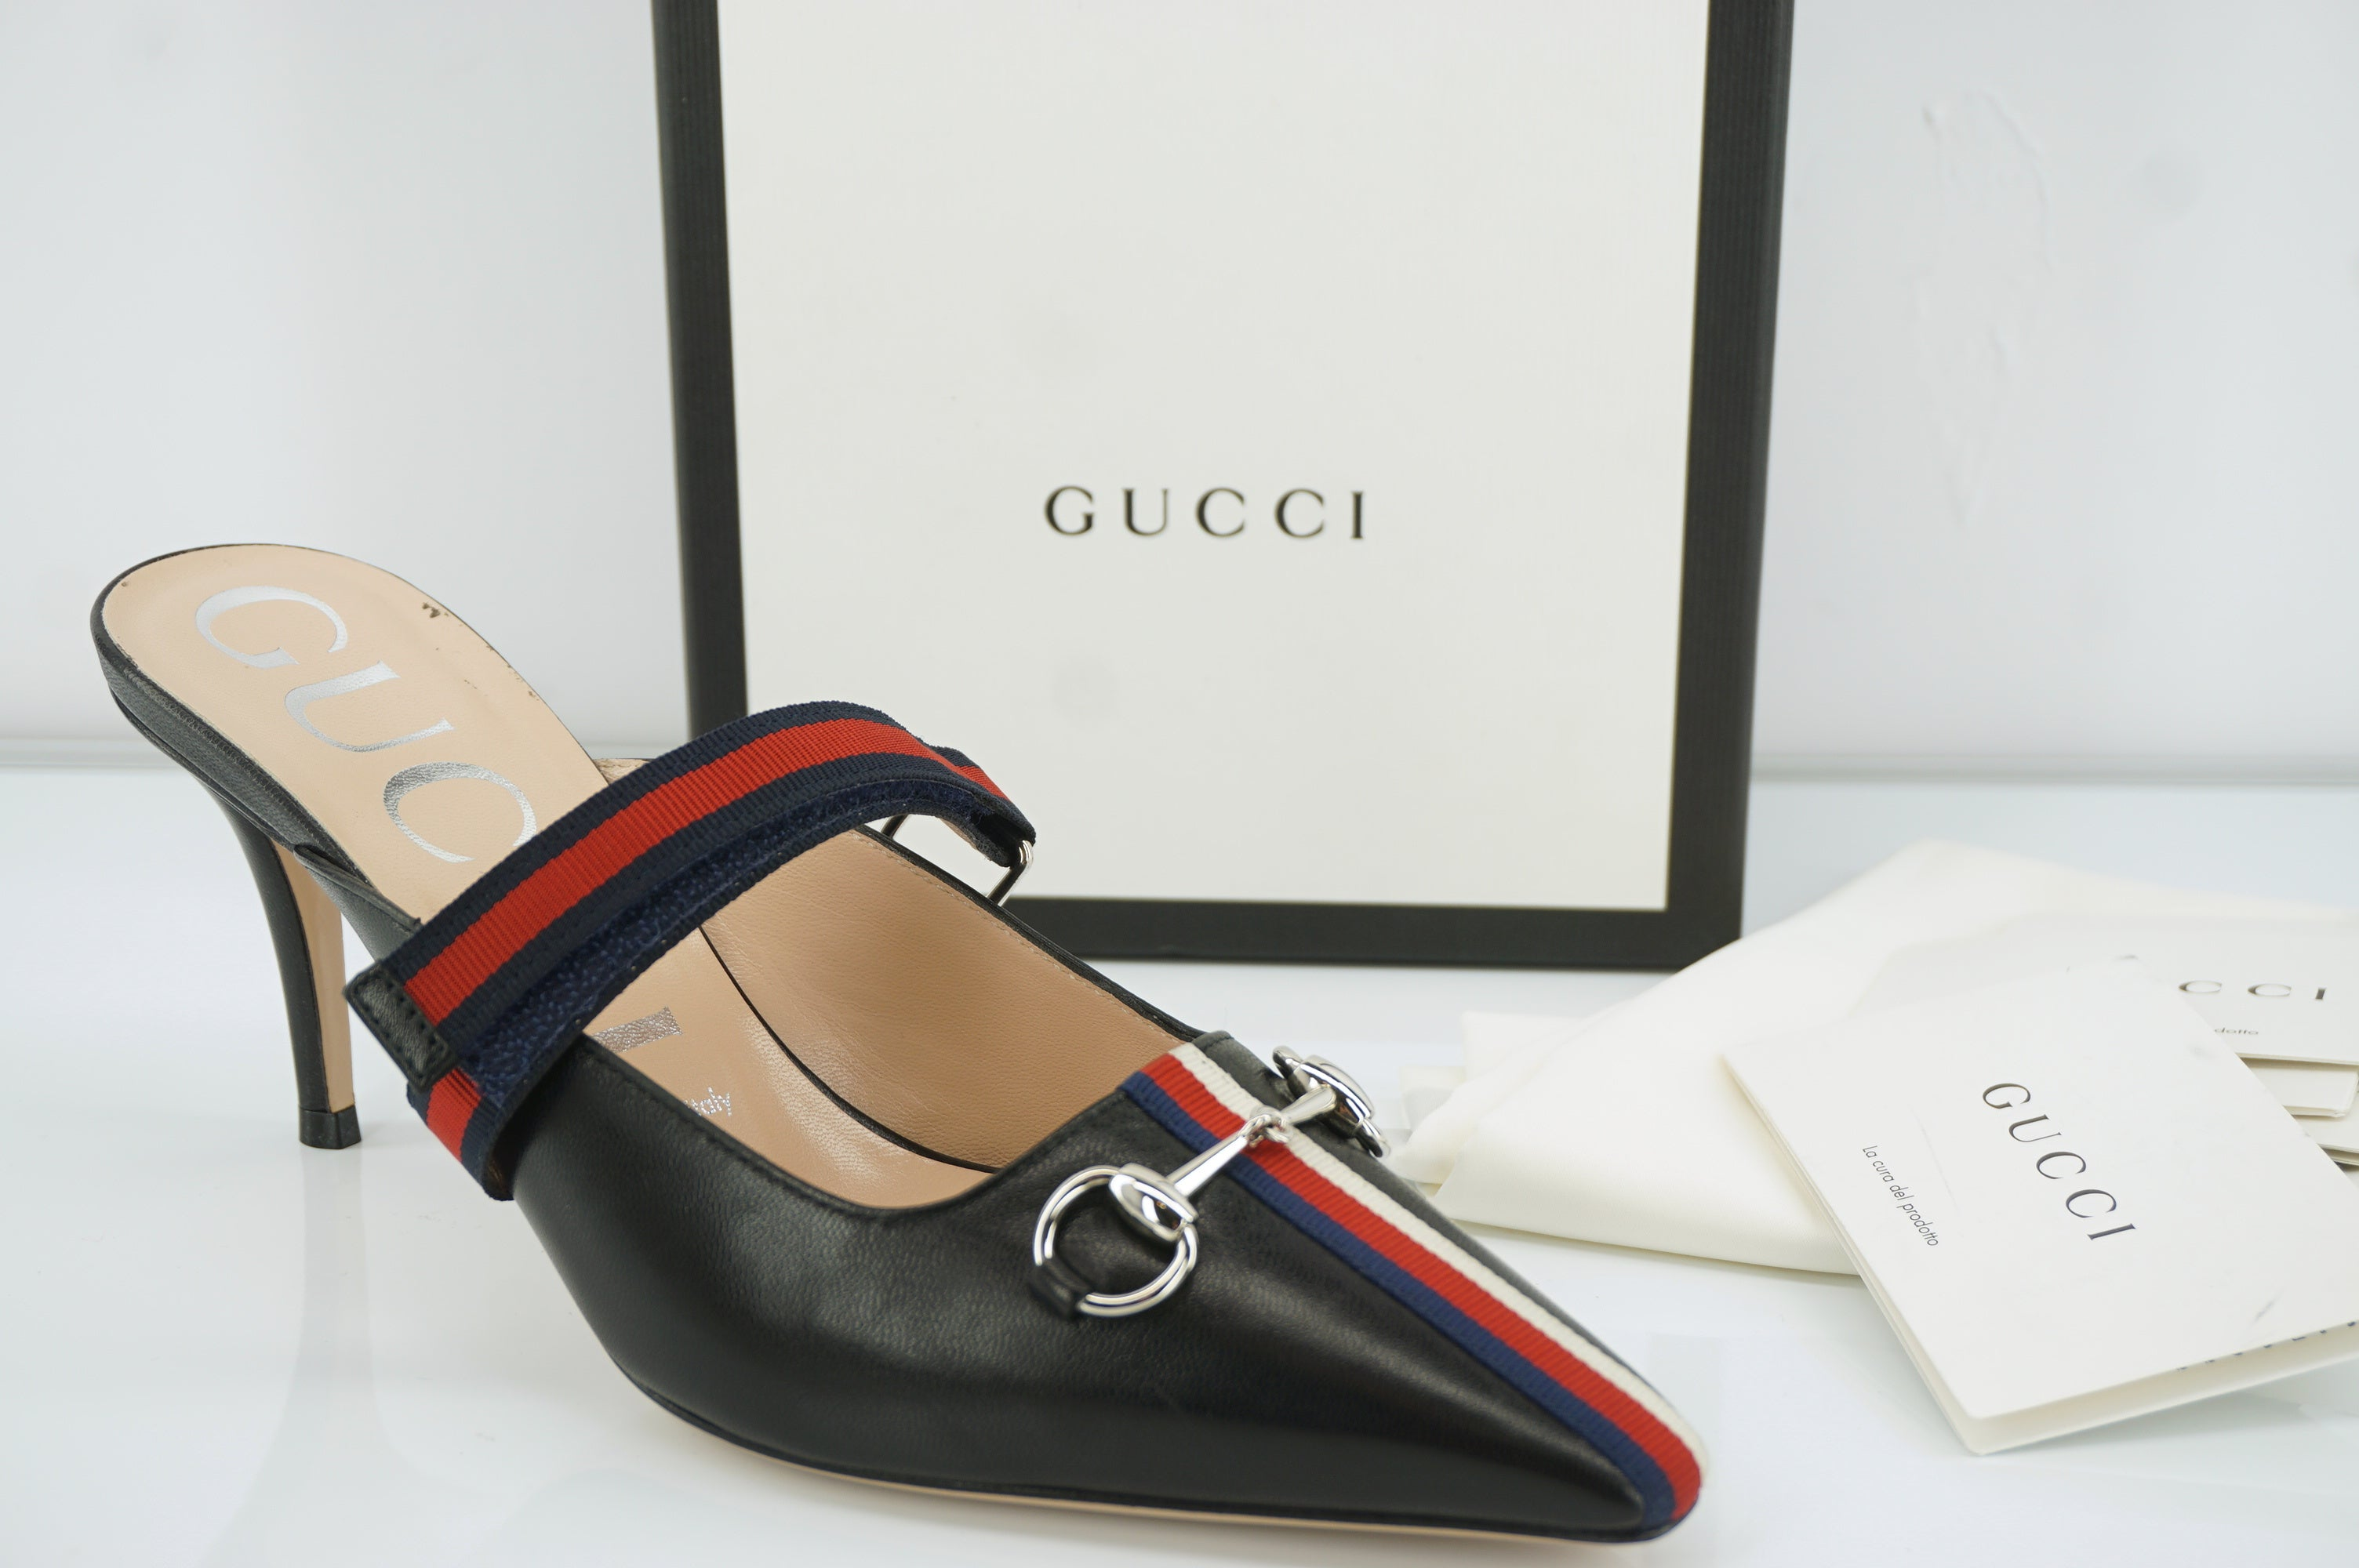 Gucci Emma Horsebit Black Leather Web Trim Slide Mule Sandal Size 37.5 NIB